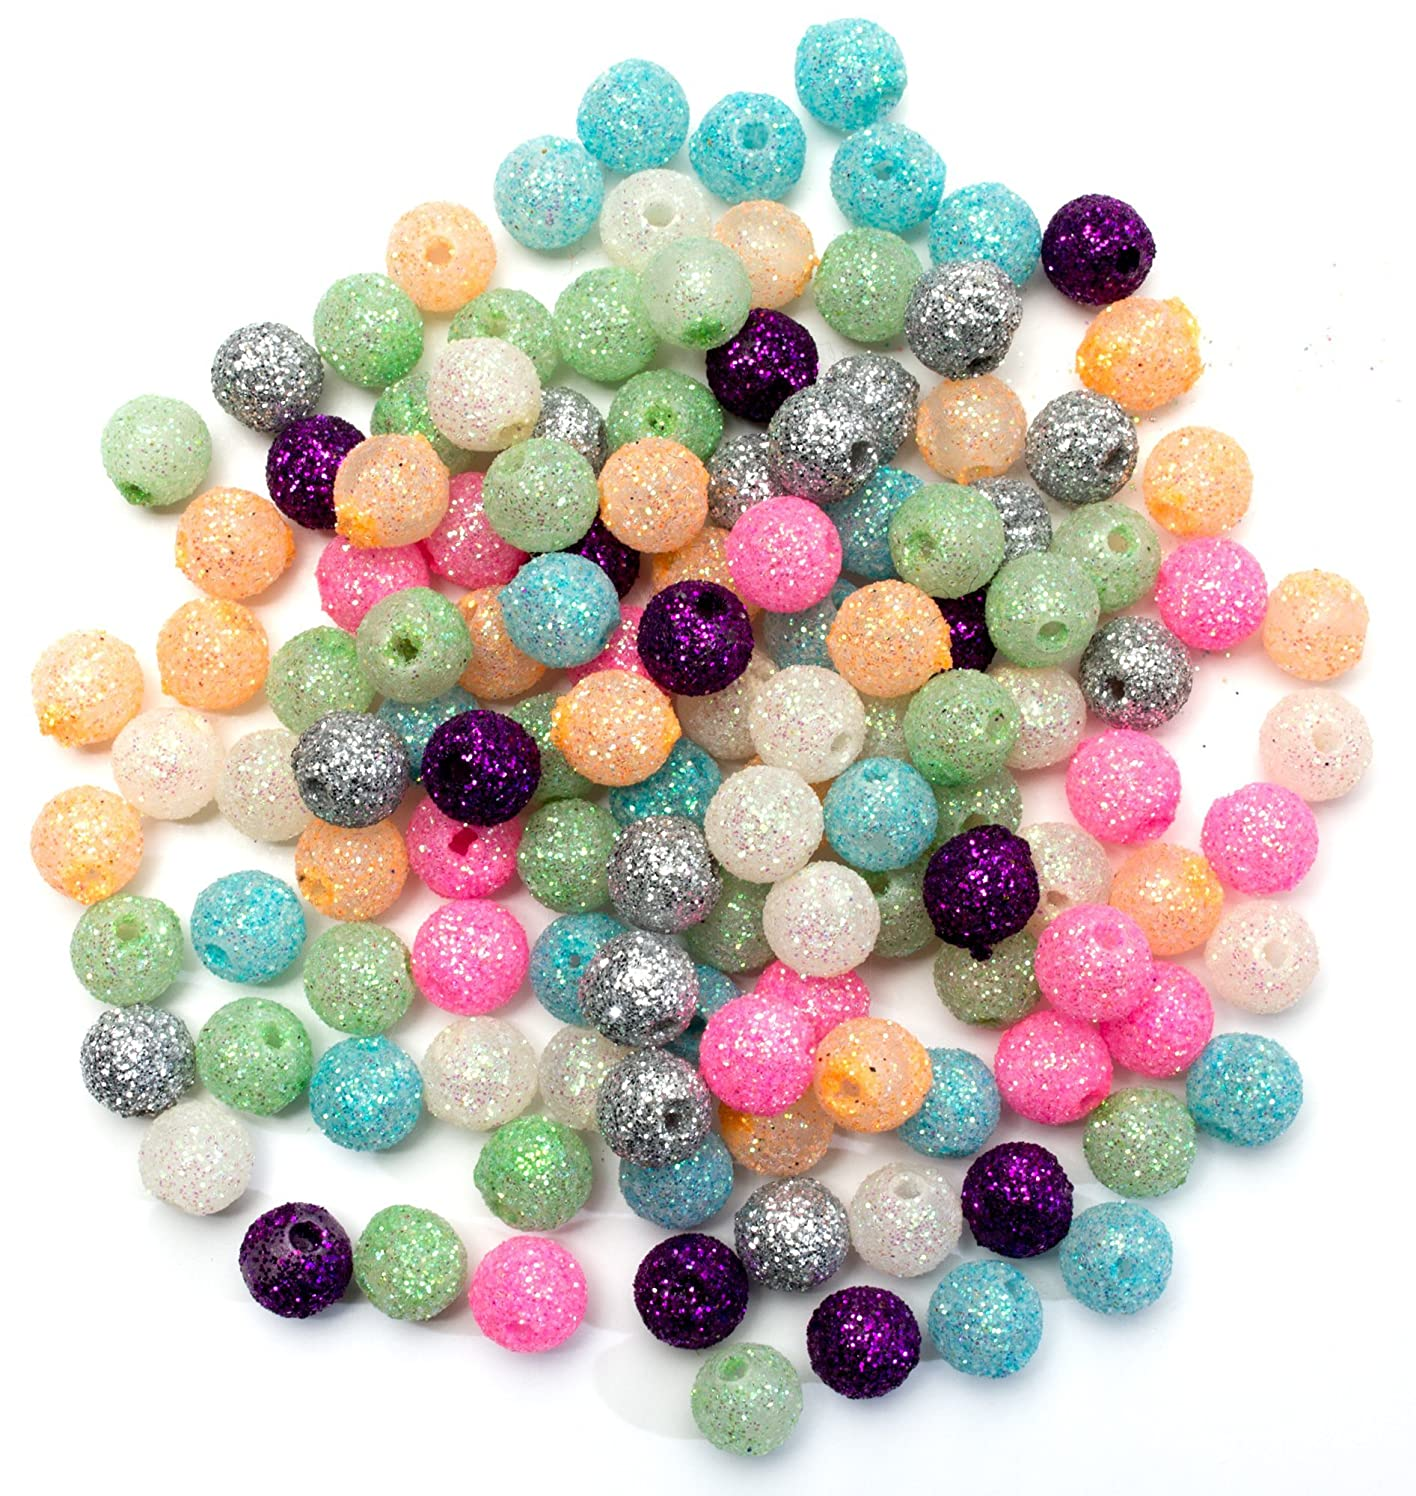 Cousin Bead Girl Glitter Round Beads, Assorted Colors, 125-Pack